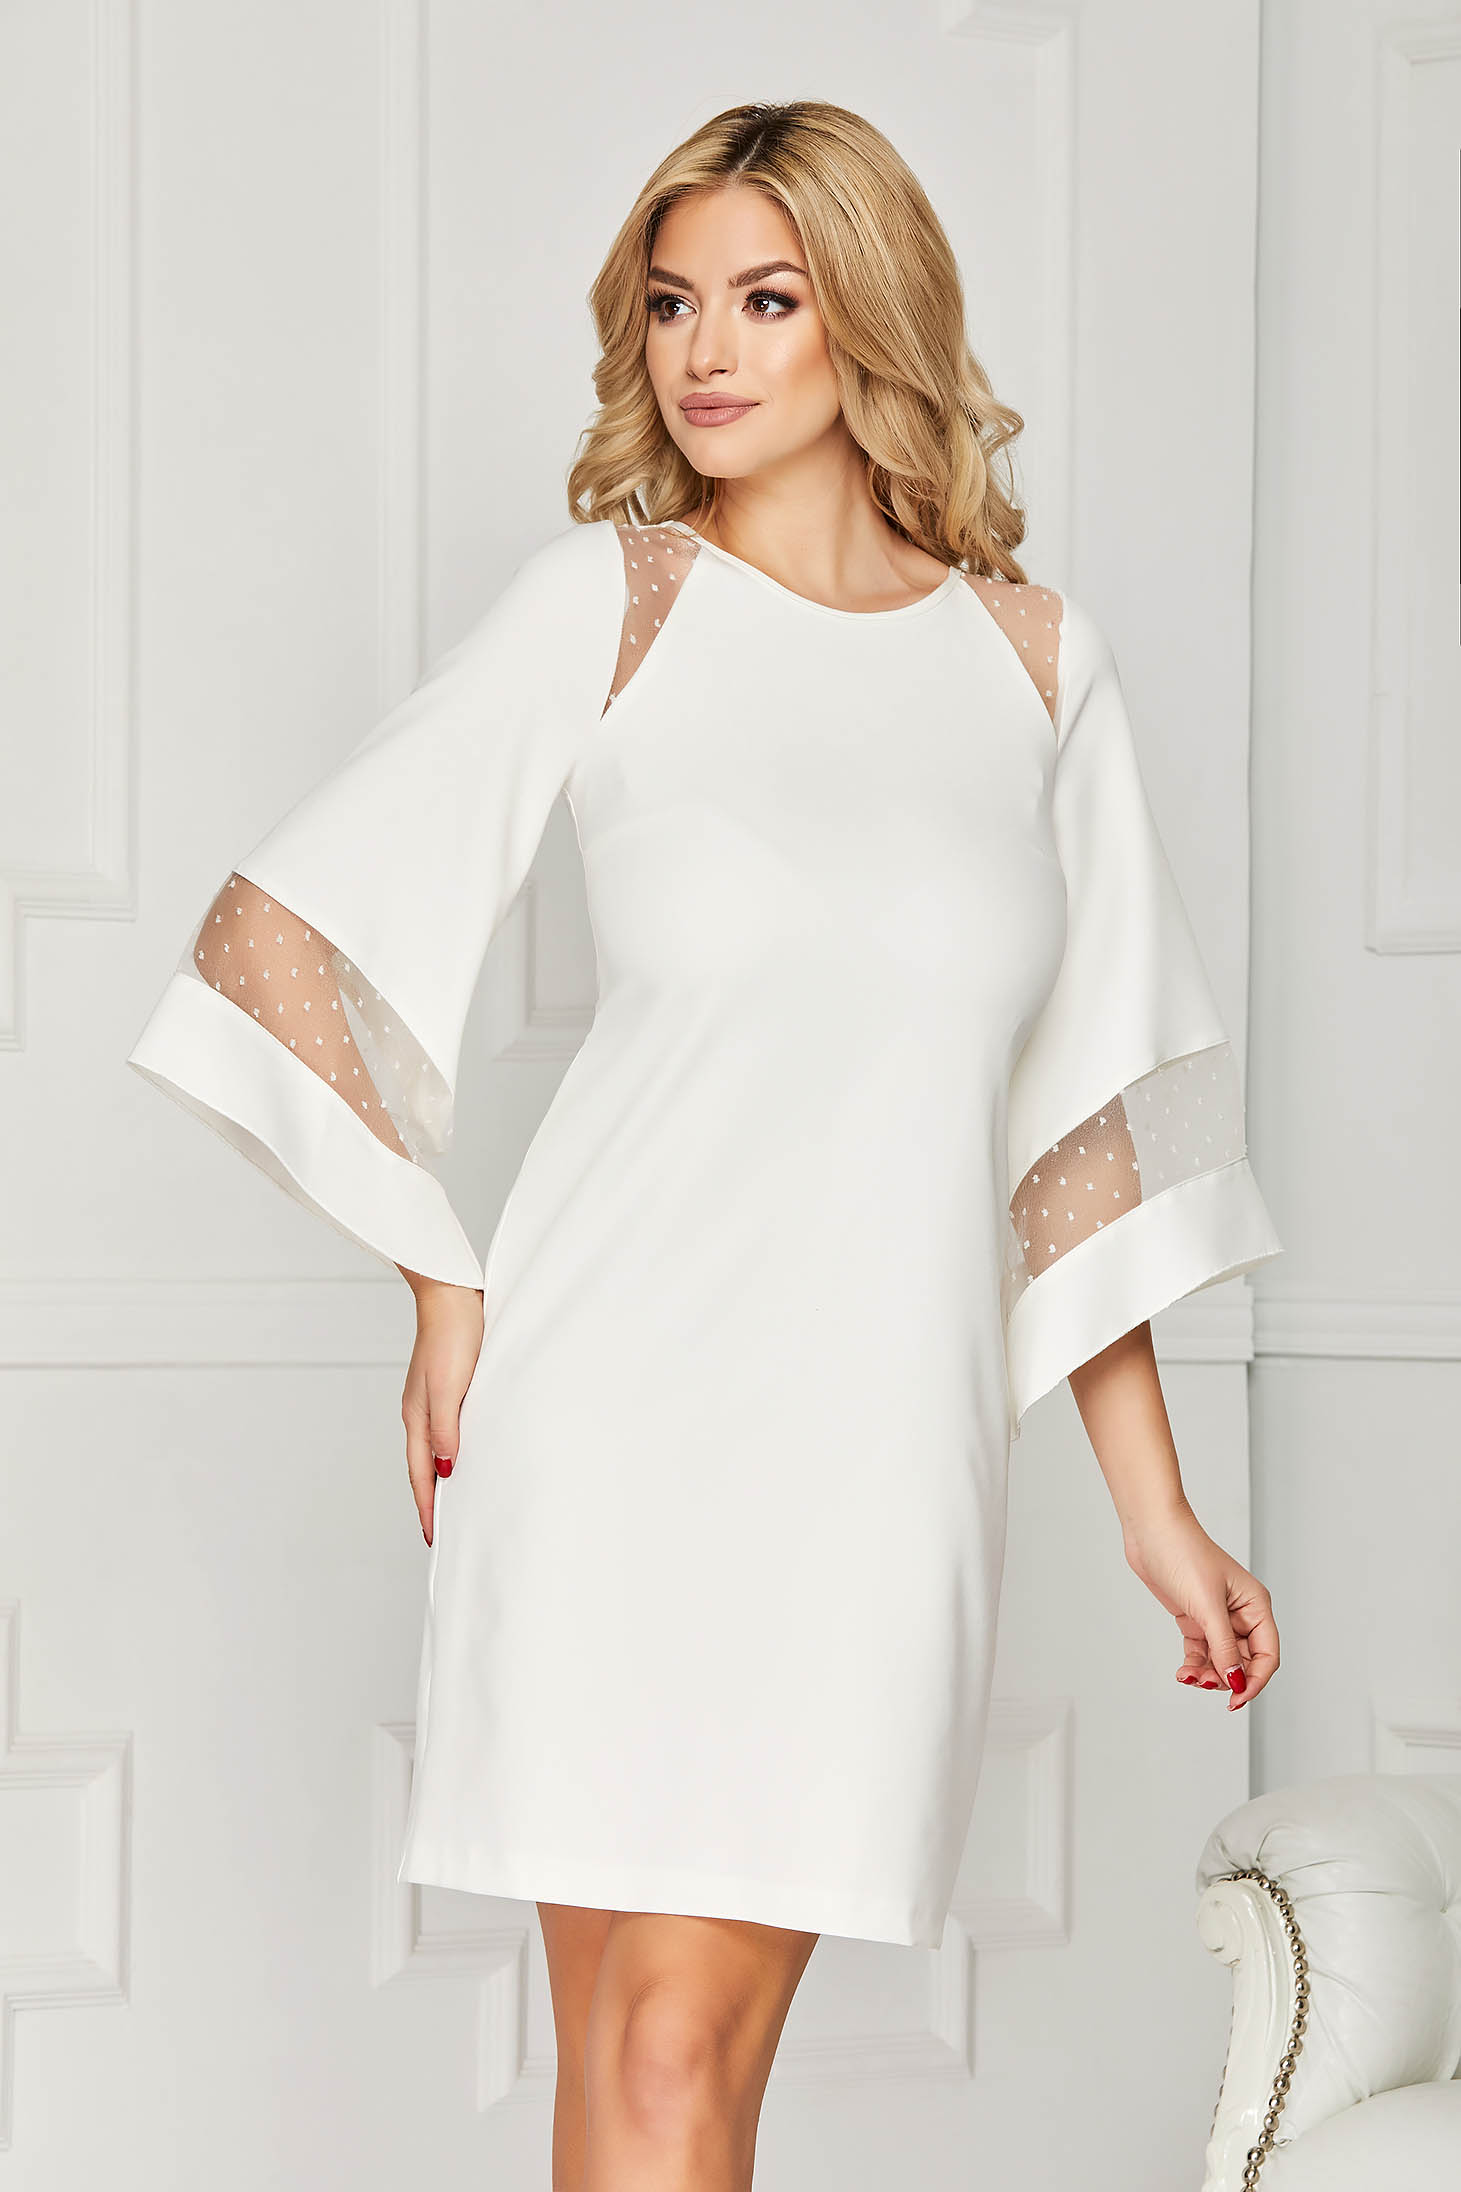 Dress StarShinerS white occasional cloth midi flared cut with inside lining bell sleeves